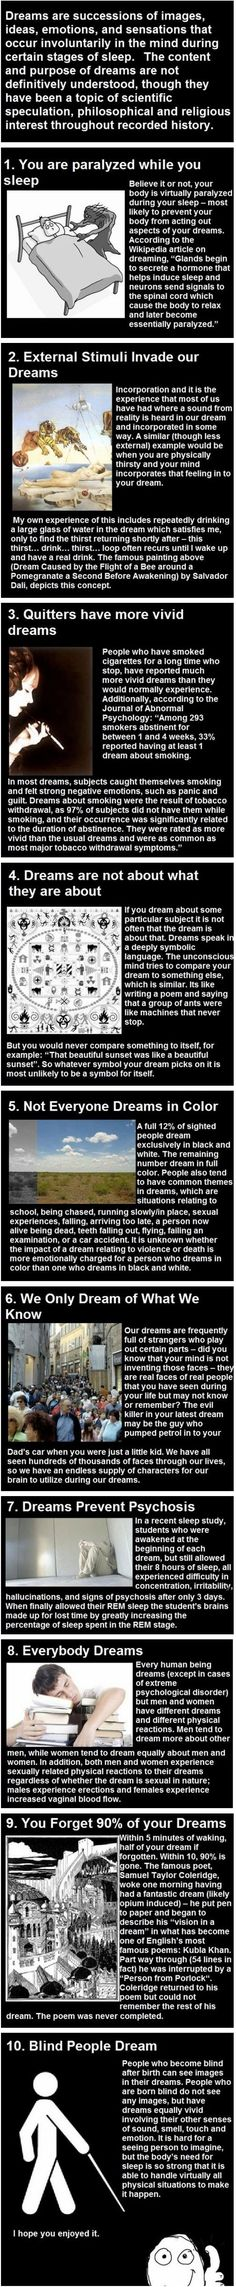 Facts about dreams -- some of these are startling!